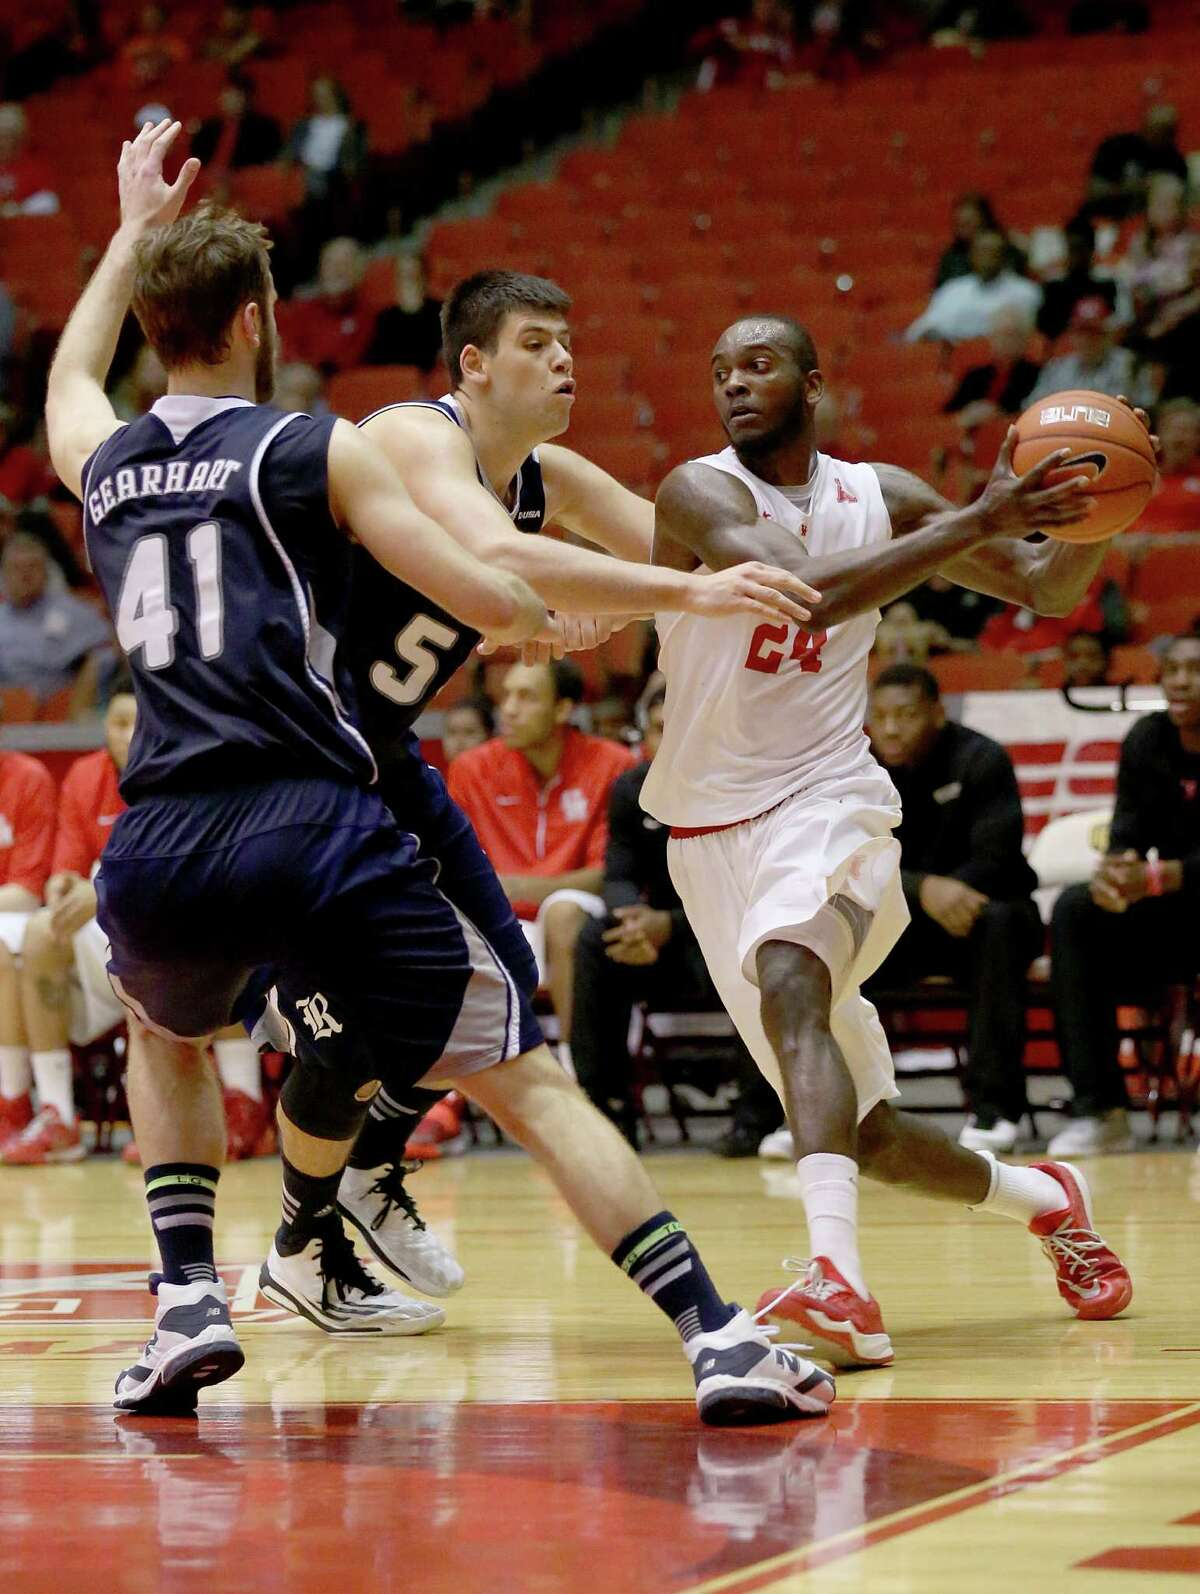 Houston Cougars forward Devonta Pollard (24) drives against Rice Owls forward Seth Gearhart (41) and center Andrew Drone (54) in the second half in a NCAA basketball game on Wednesday, January 28, 2015 at Hofheinz Pavilion in Houston, TX. UH won 59 to 48 .